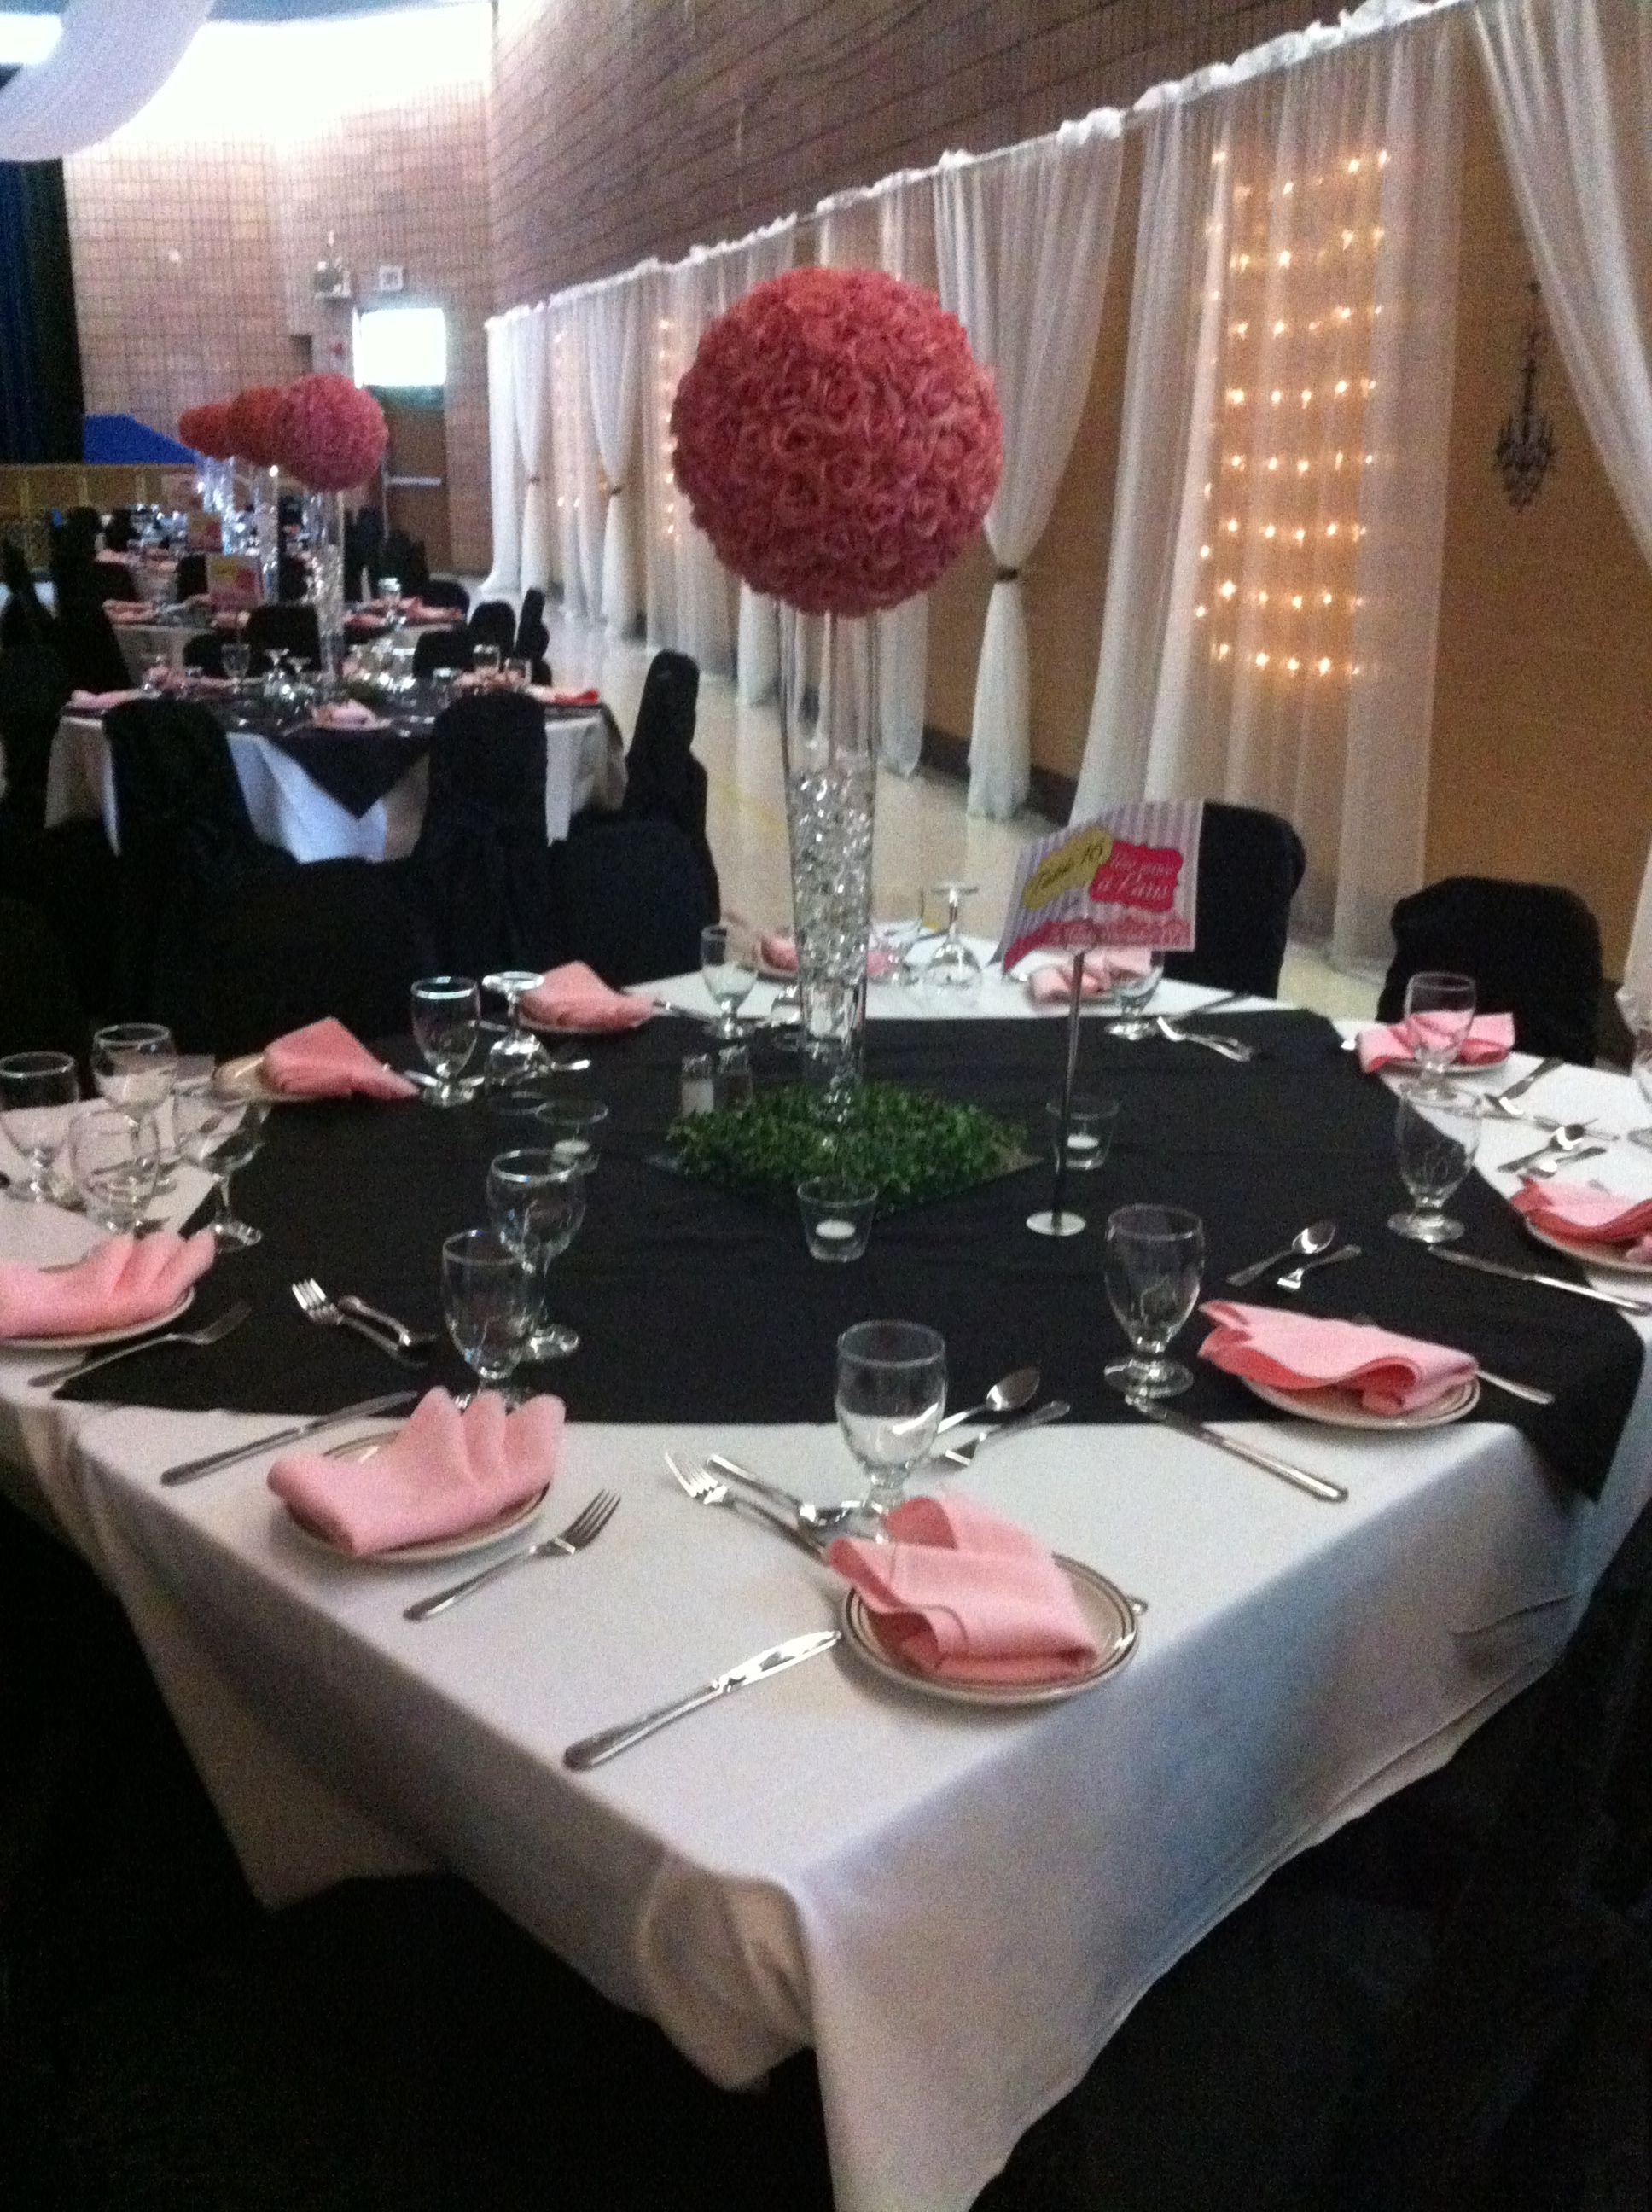 Paris Theme Black White And Pink Table Arrangement Chair Covers Flower